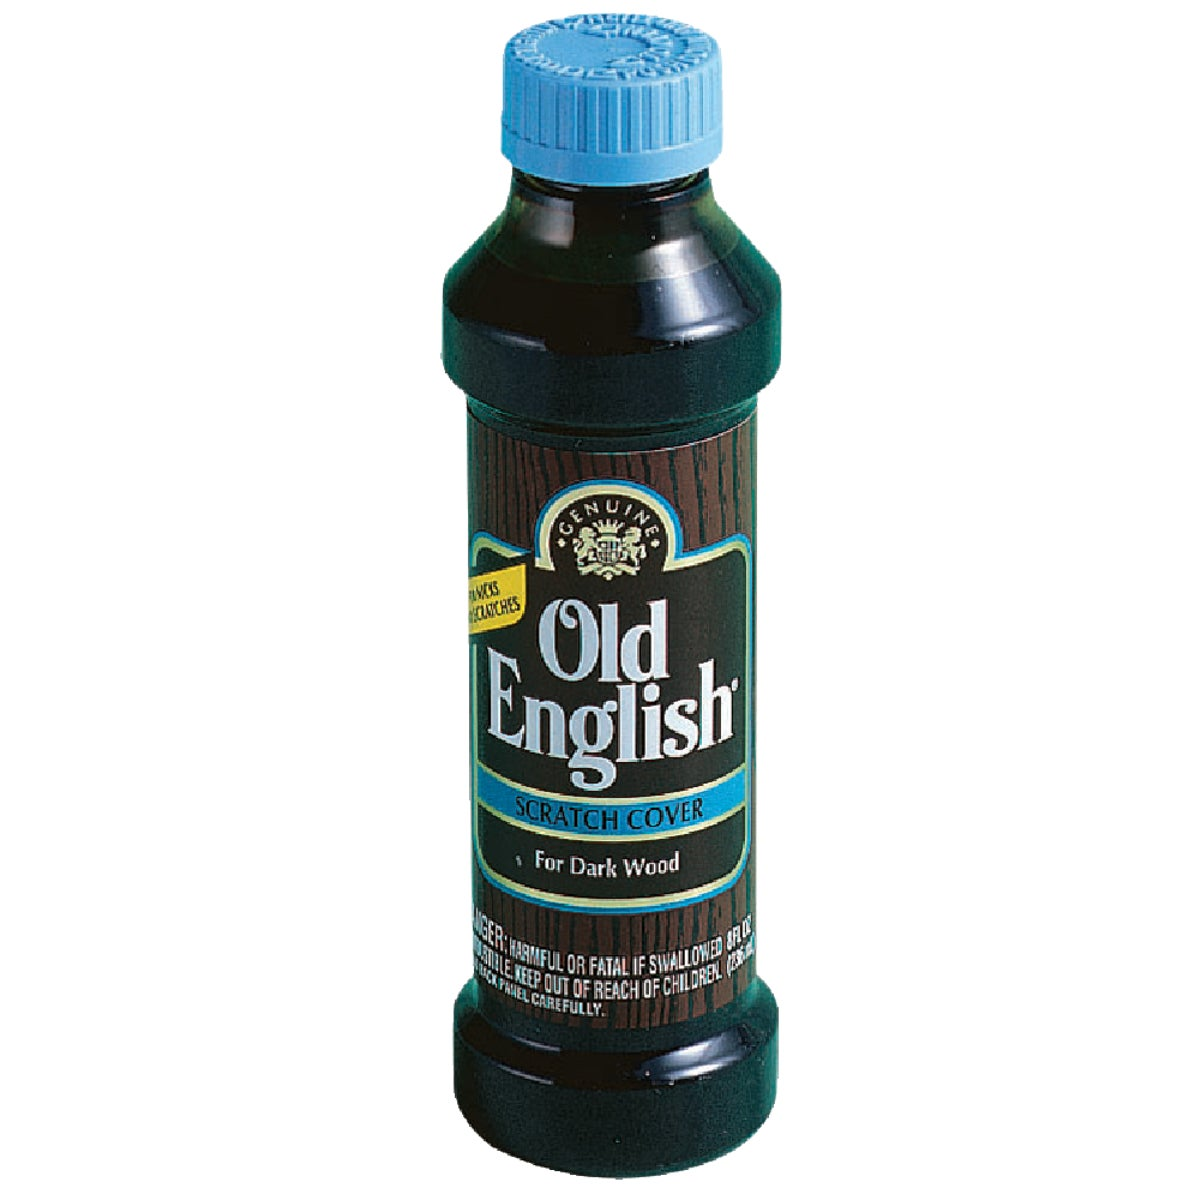 DARK OLD ENGLISH - 6233875144 by Reckitt Benckiser